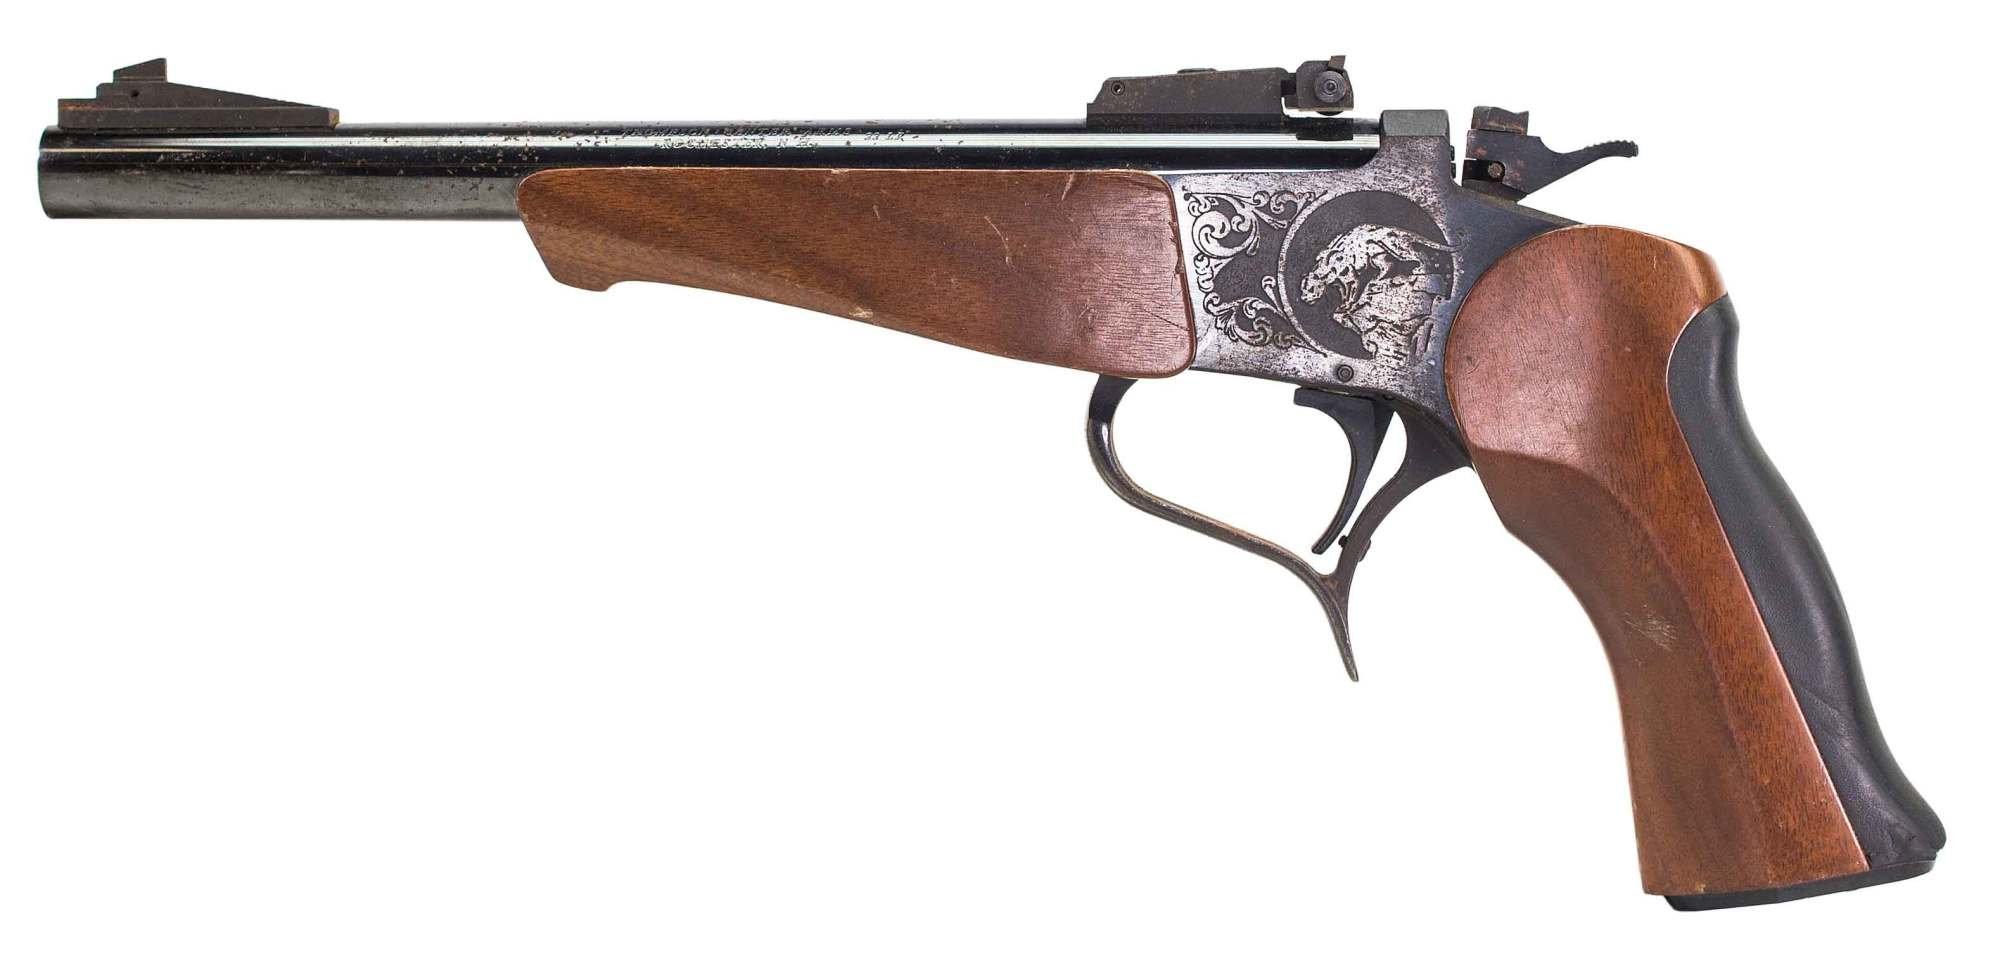 hight resolution of thompson center contender auction id 7925052 end time